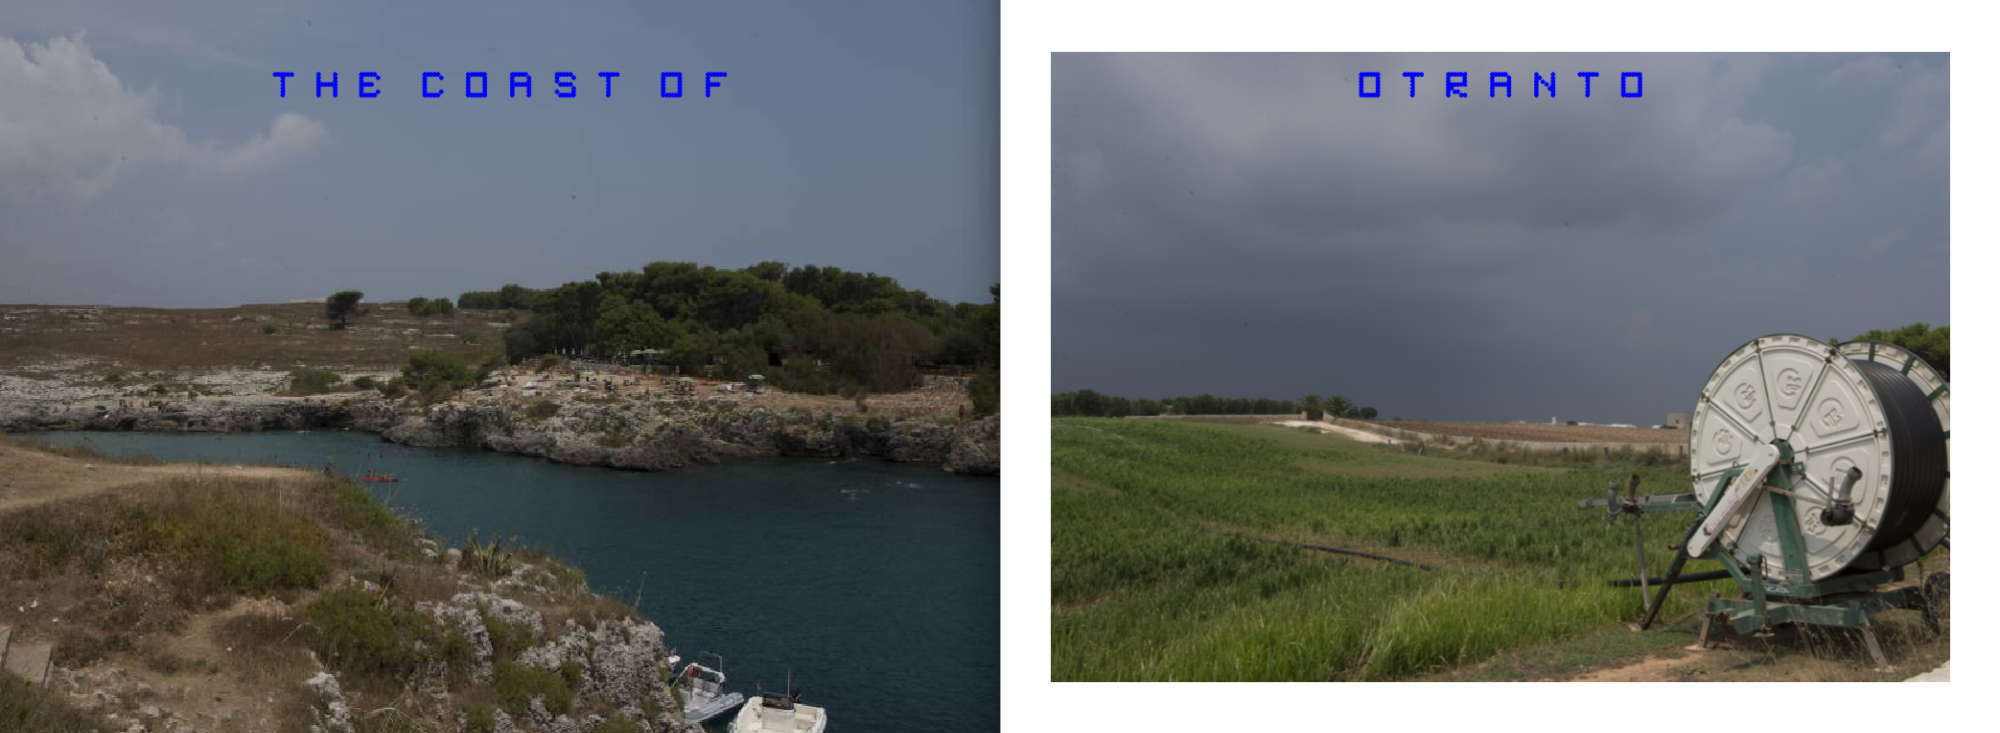 Puglia Album - Pages 14-15: Views of the coast of Otranto